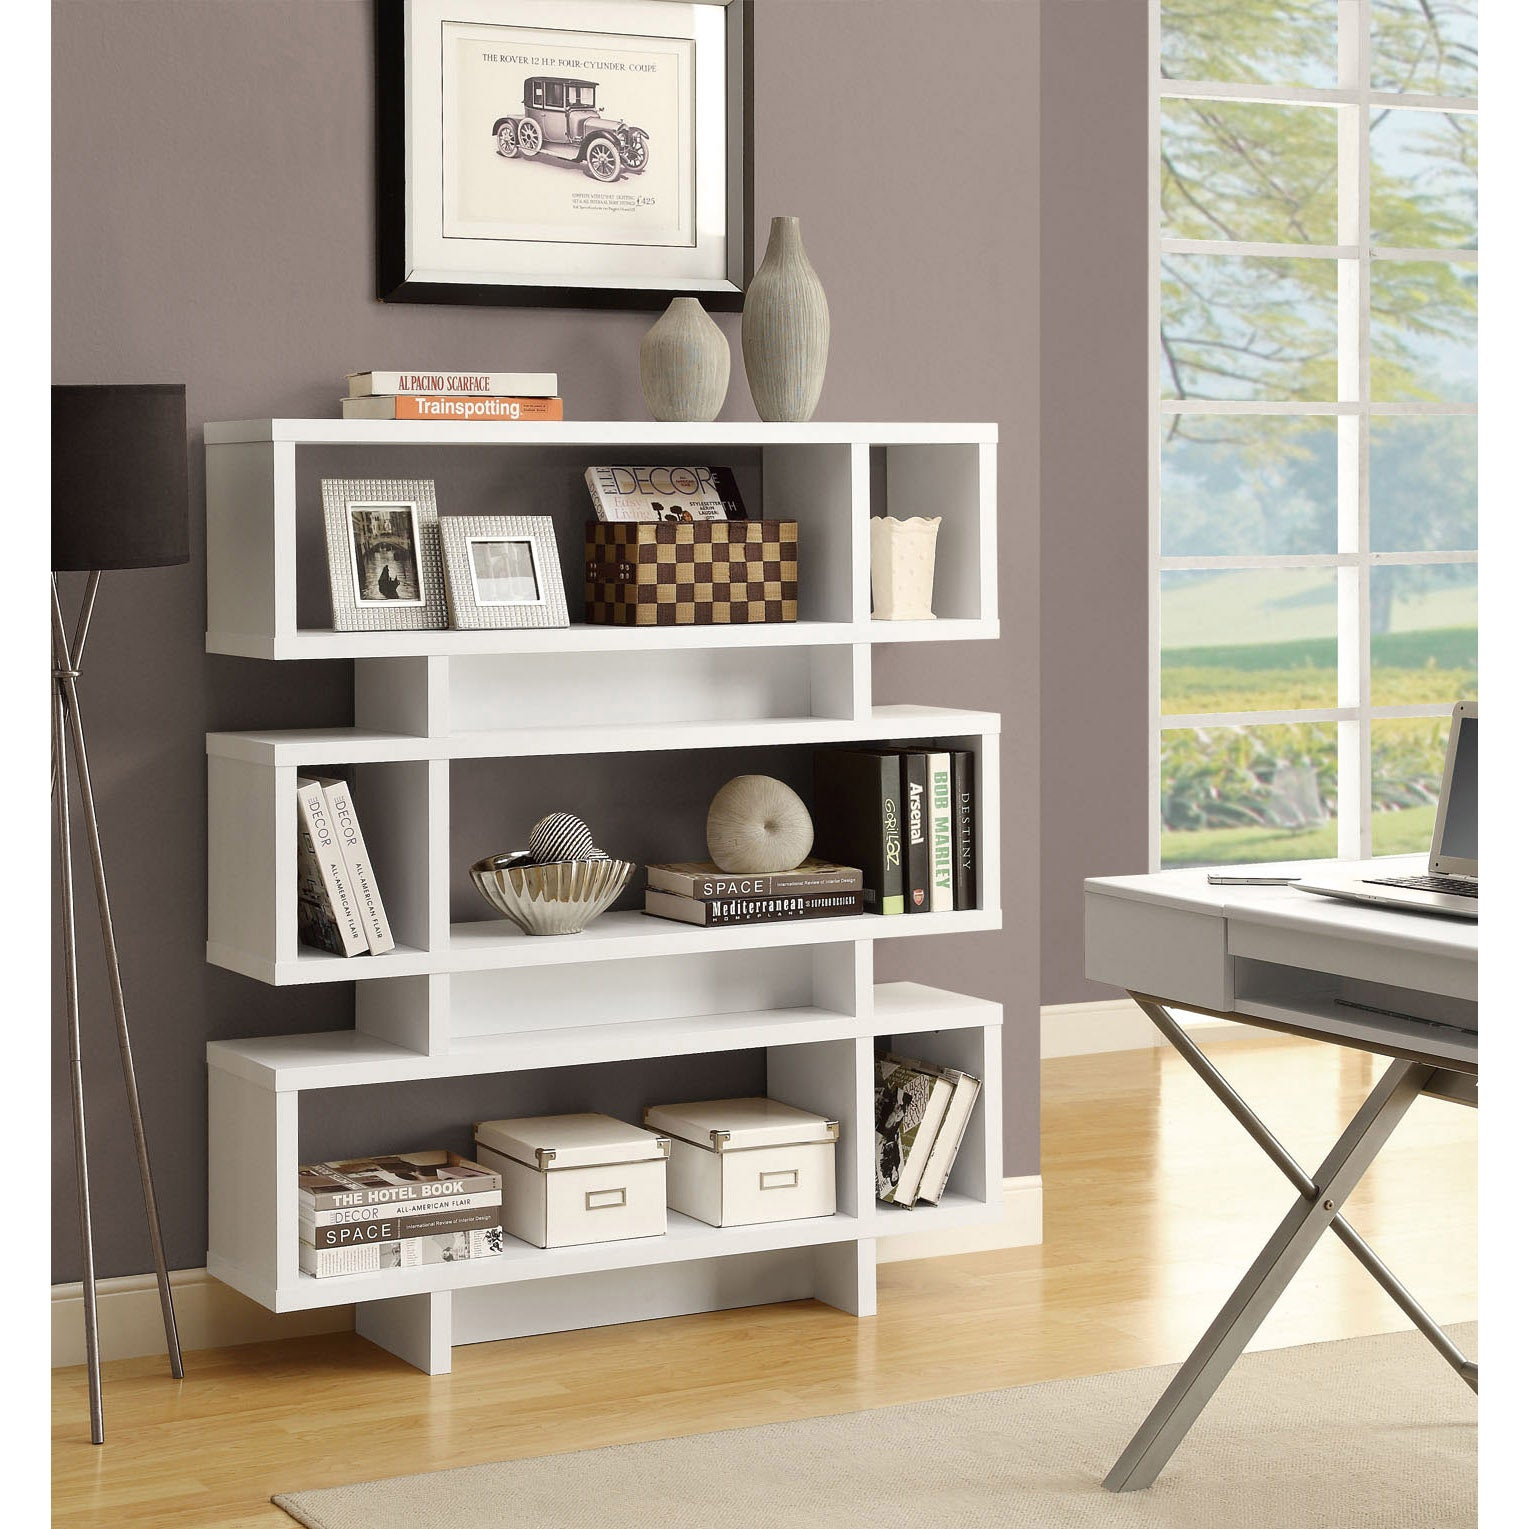 House Bookshelf: White 55-inch High Modern Bookcase